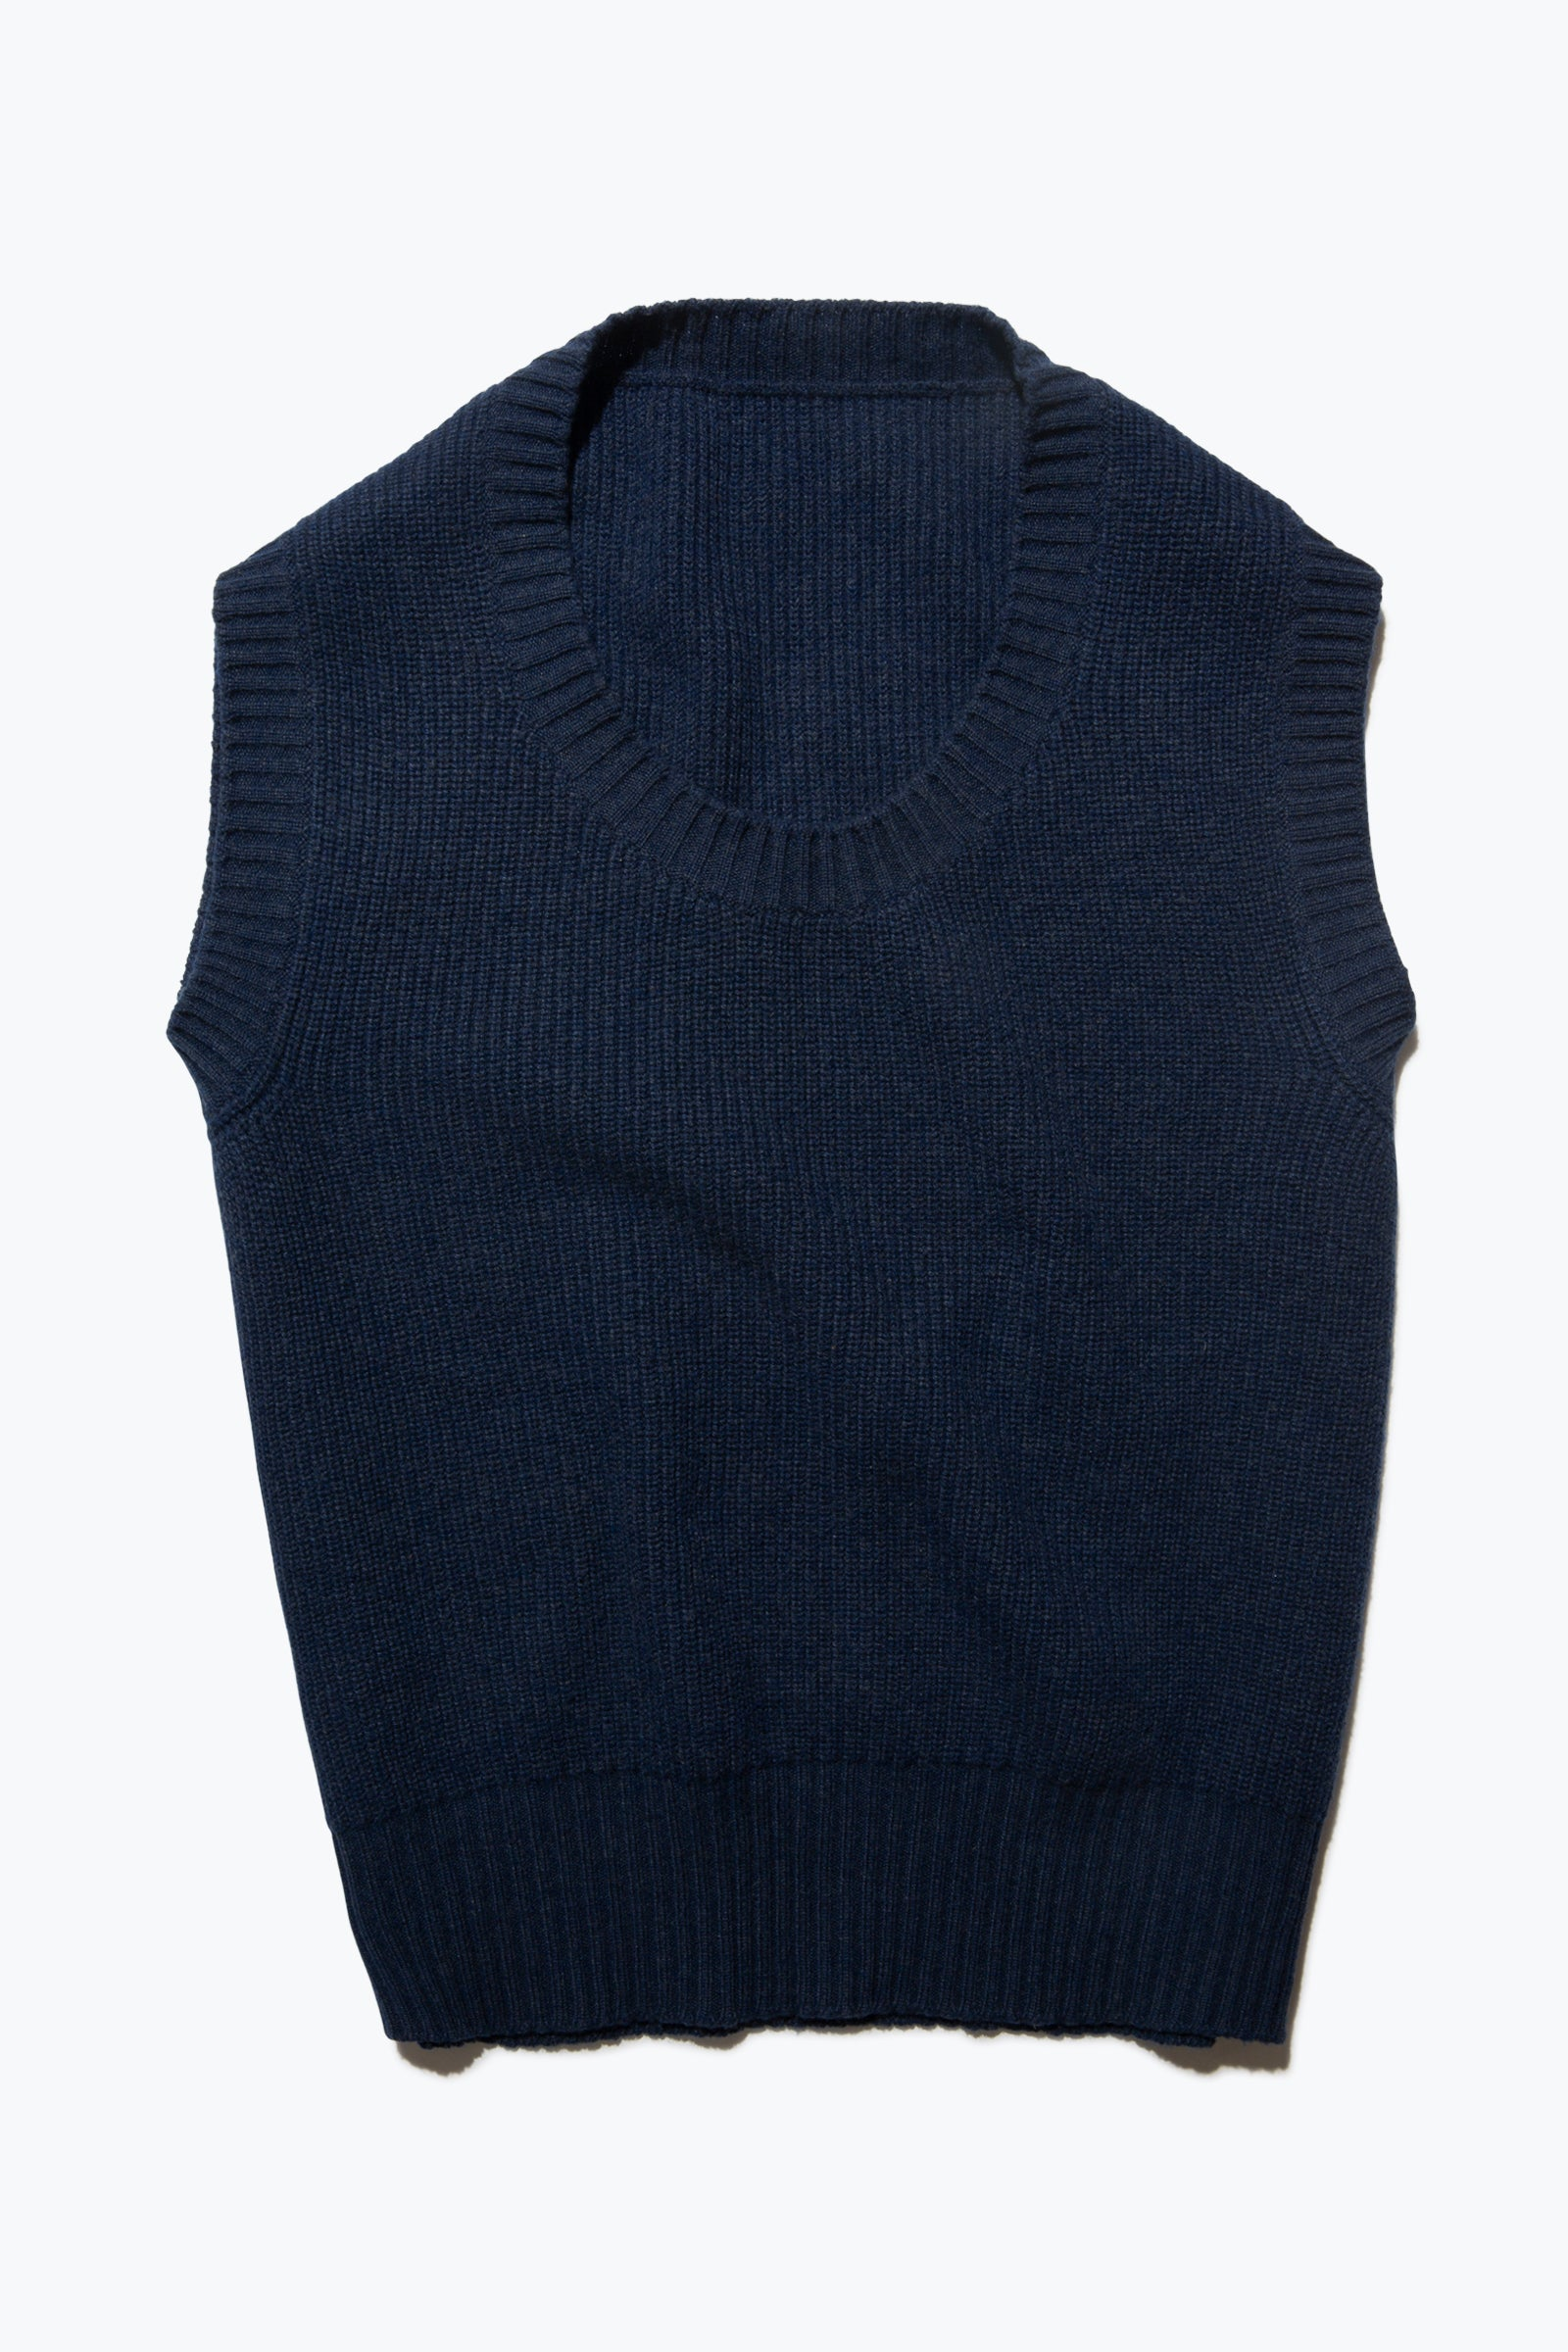 Sweaters - U-Neck Vest (Dark Indigo)